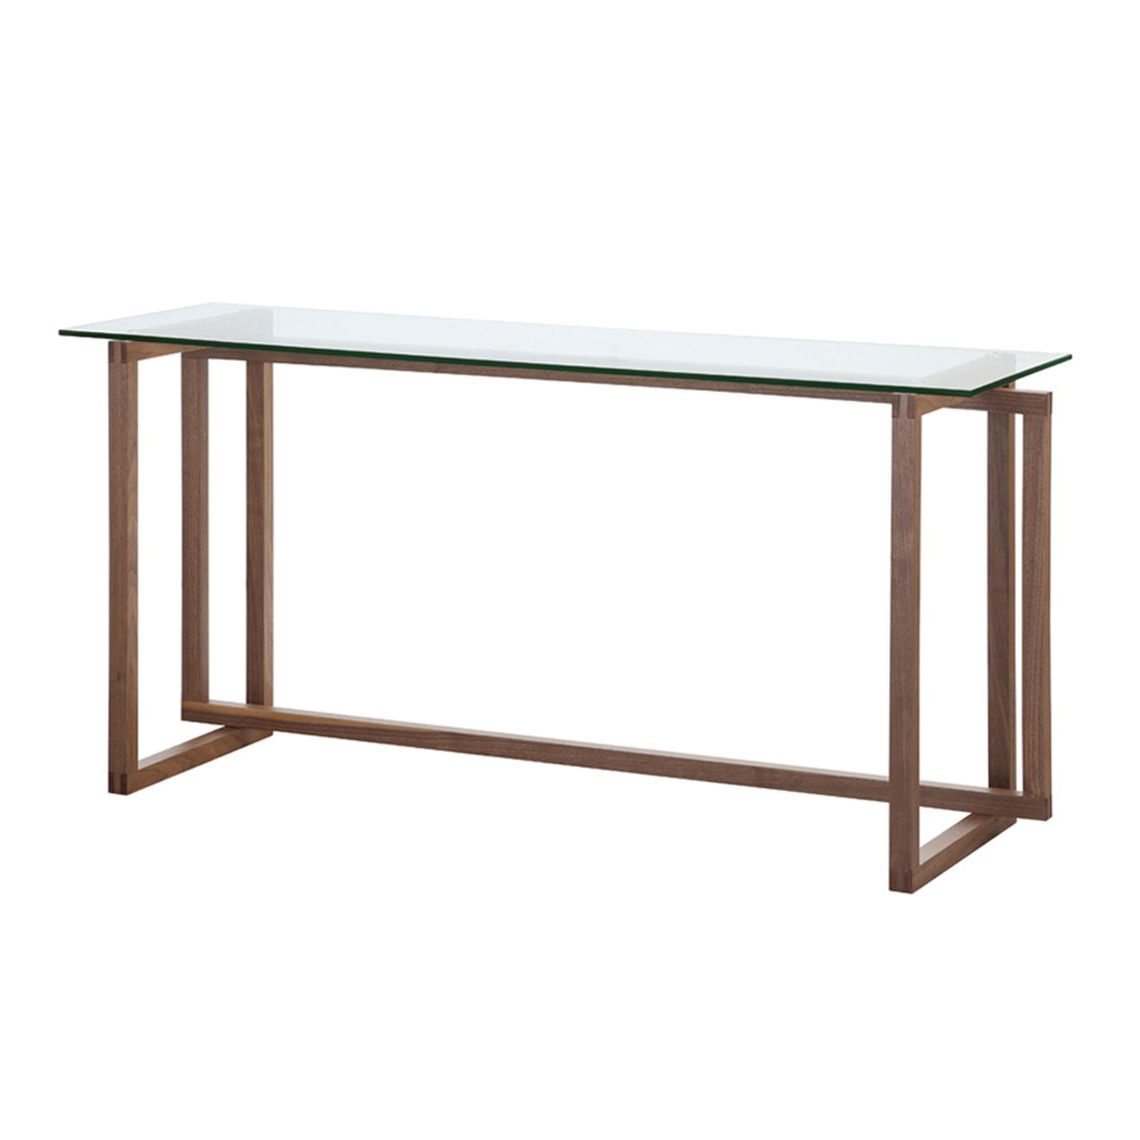 Kyra Console Table | Freedom Inside Kyra Console Tables (View 2 of 20)